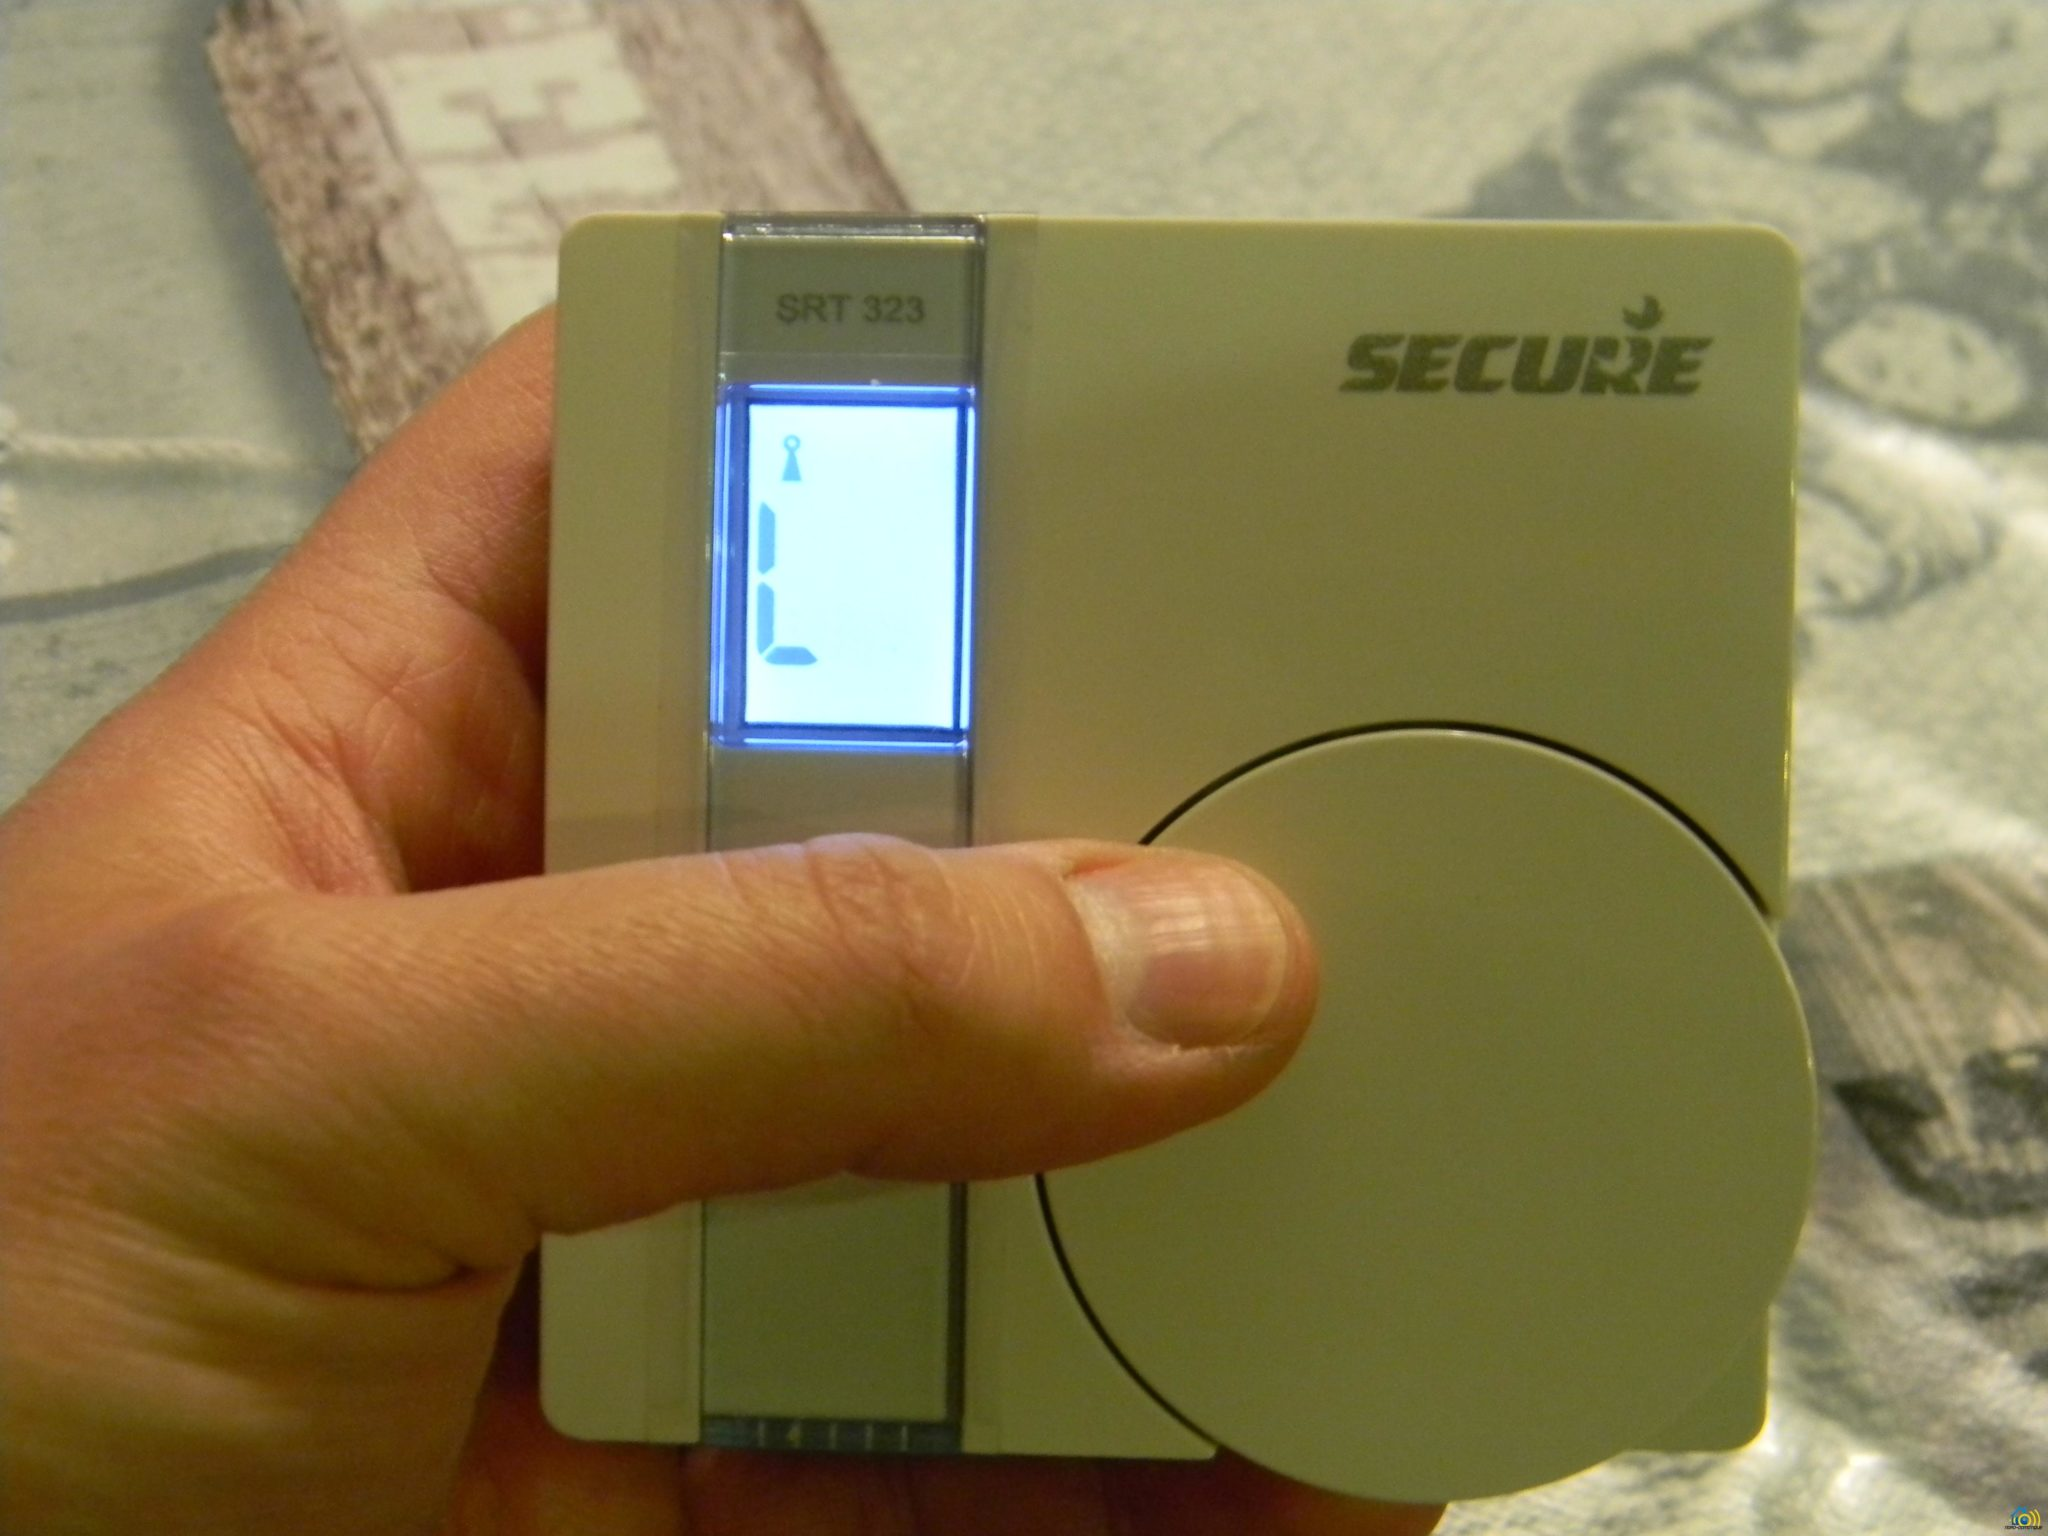 9 Test du Thermostat SRT323 sur Vera Edge